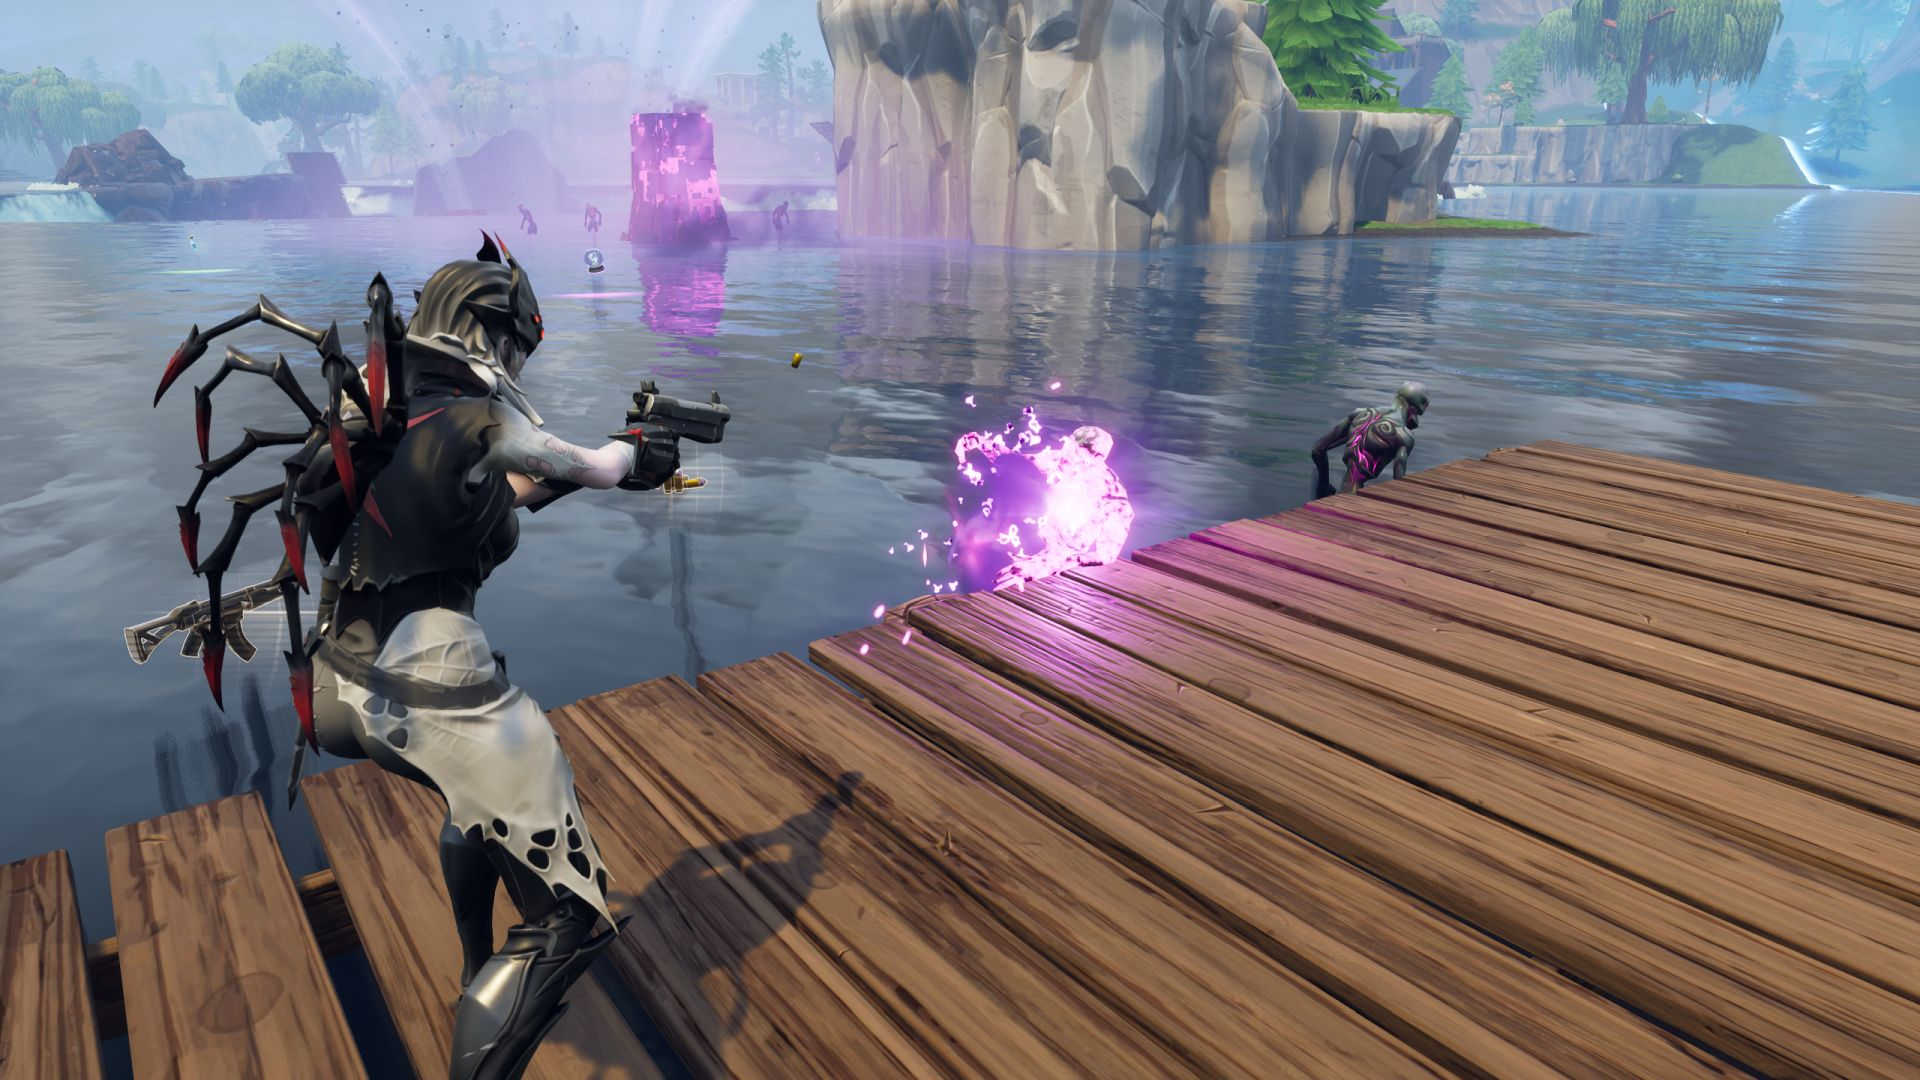 Fortnite Screenshot 2018.10.25 – 12.20.26.82